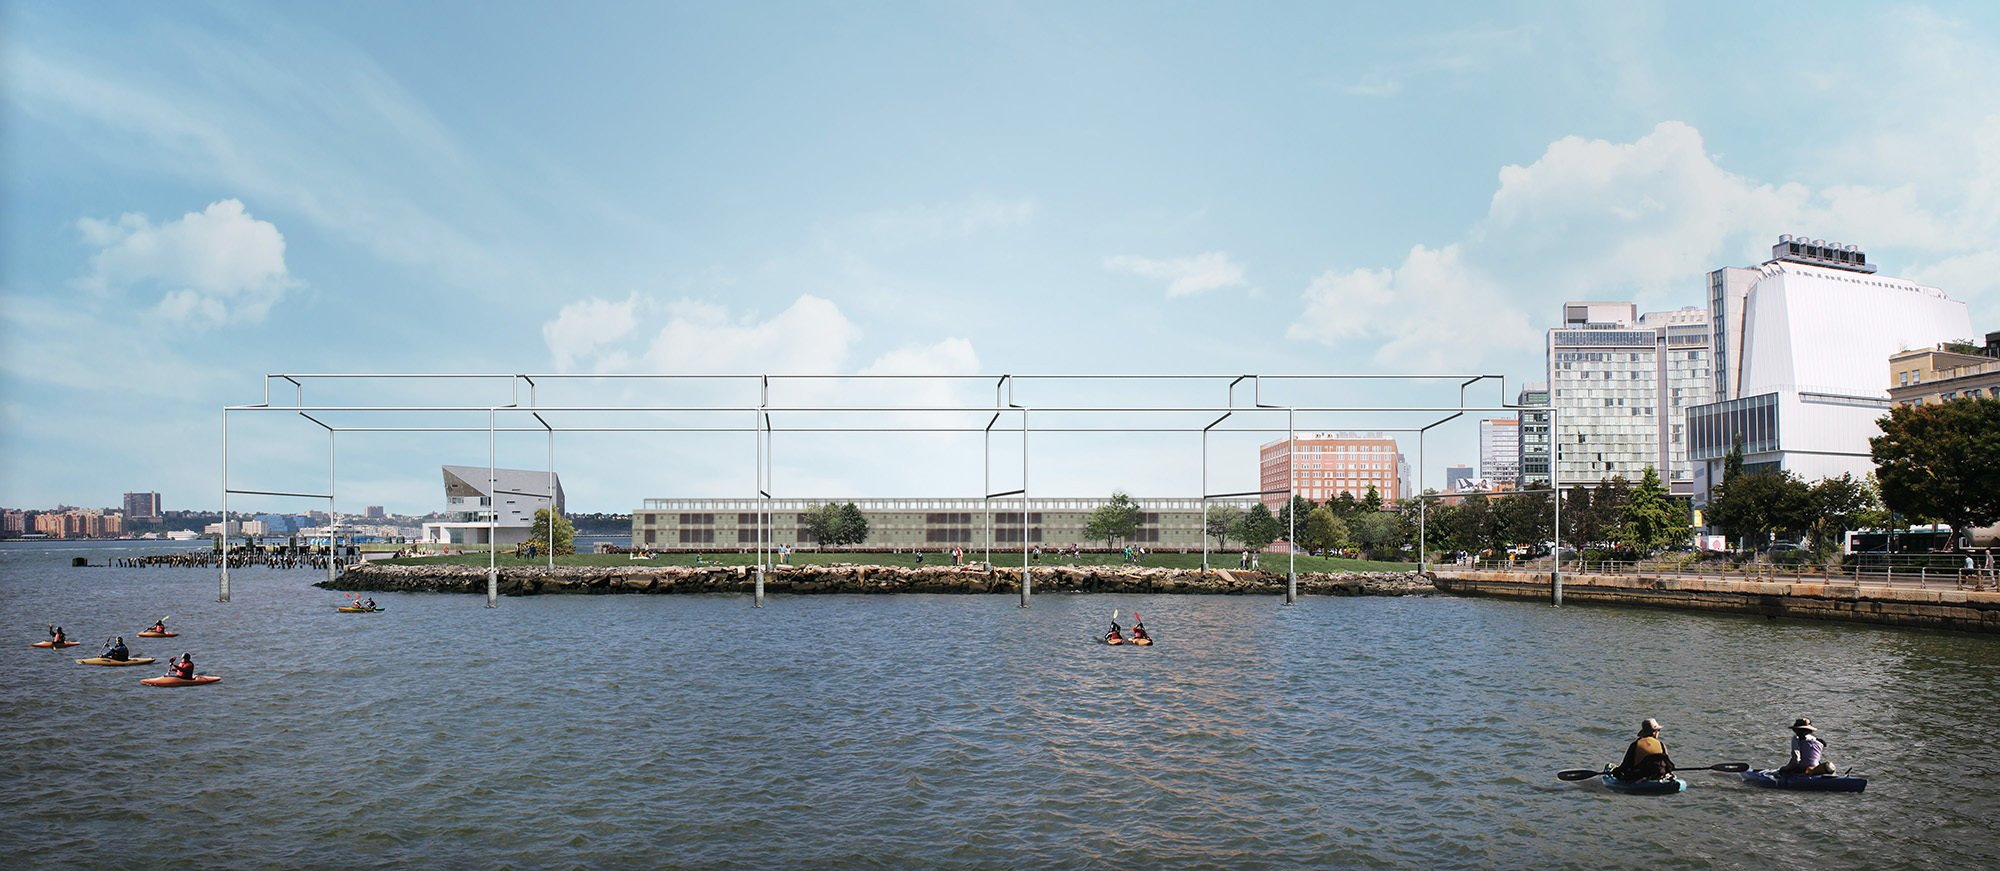 A rendering of the proposed Hammons art installation as seen from the south.CreditGuy Nordenson and Associates